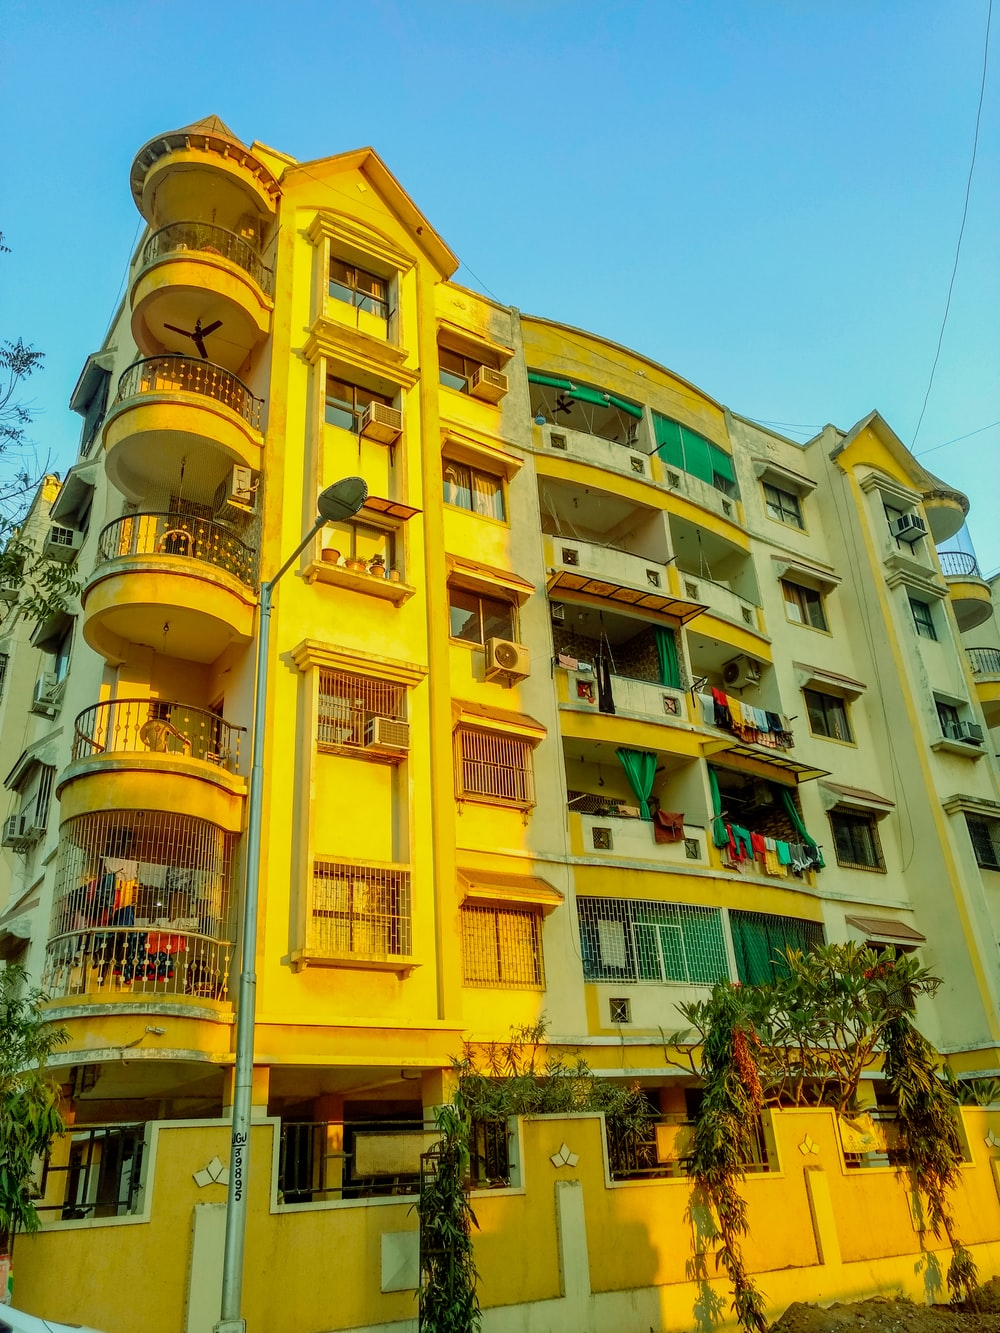 yellow and green concrete high-rise building